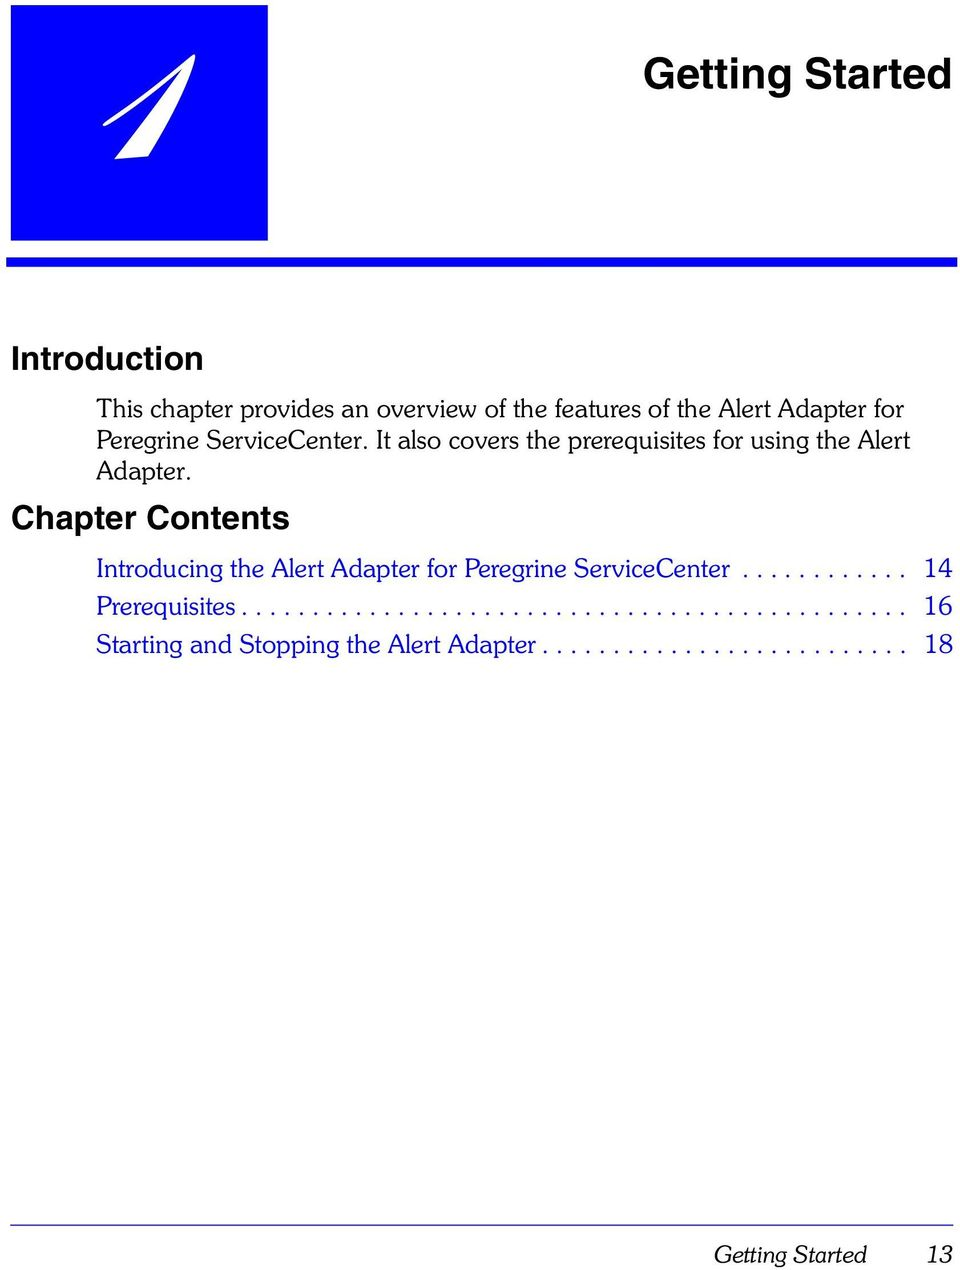 Chapter Contents Introducing the Alert Adapter for Peregrine ServiceCenter............ 14 Prerequisites.